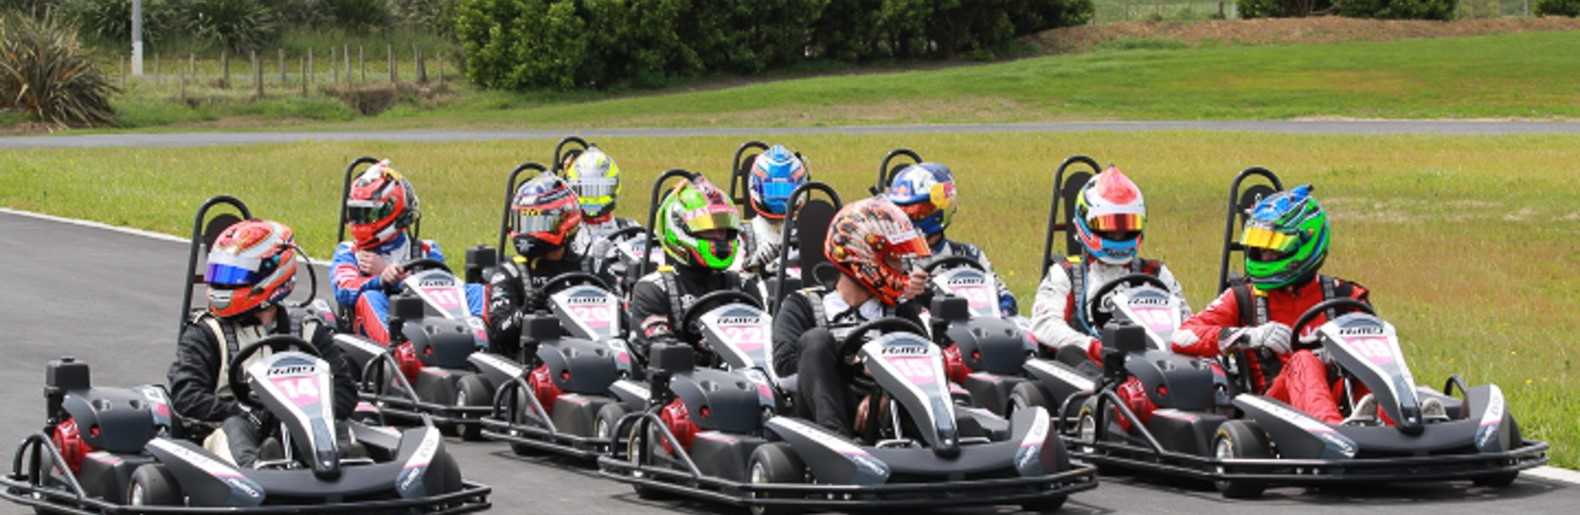 Hampton Downs Go Karts, Waikato NZ